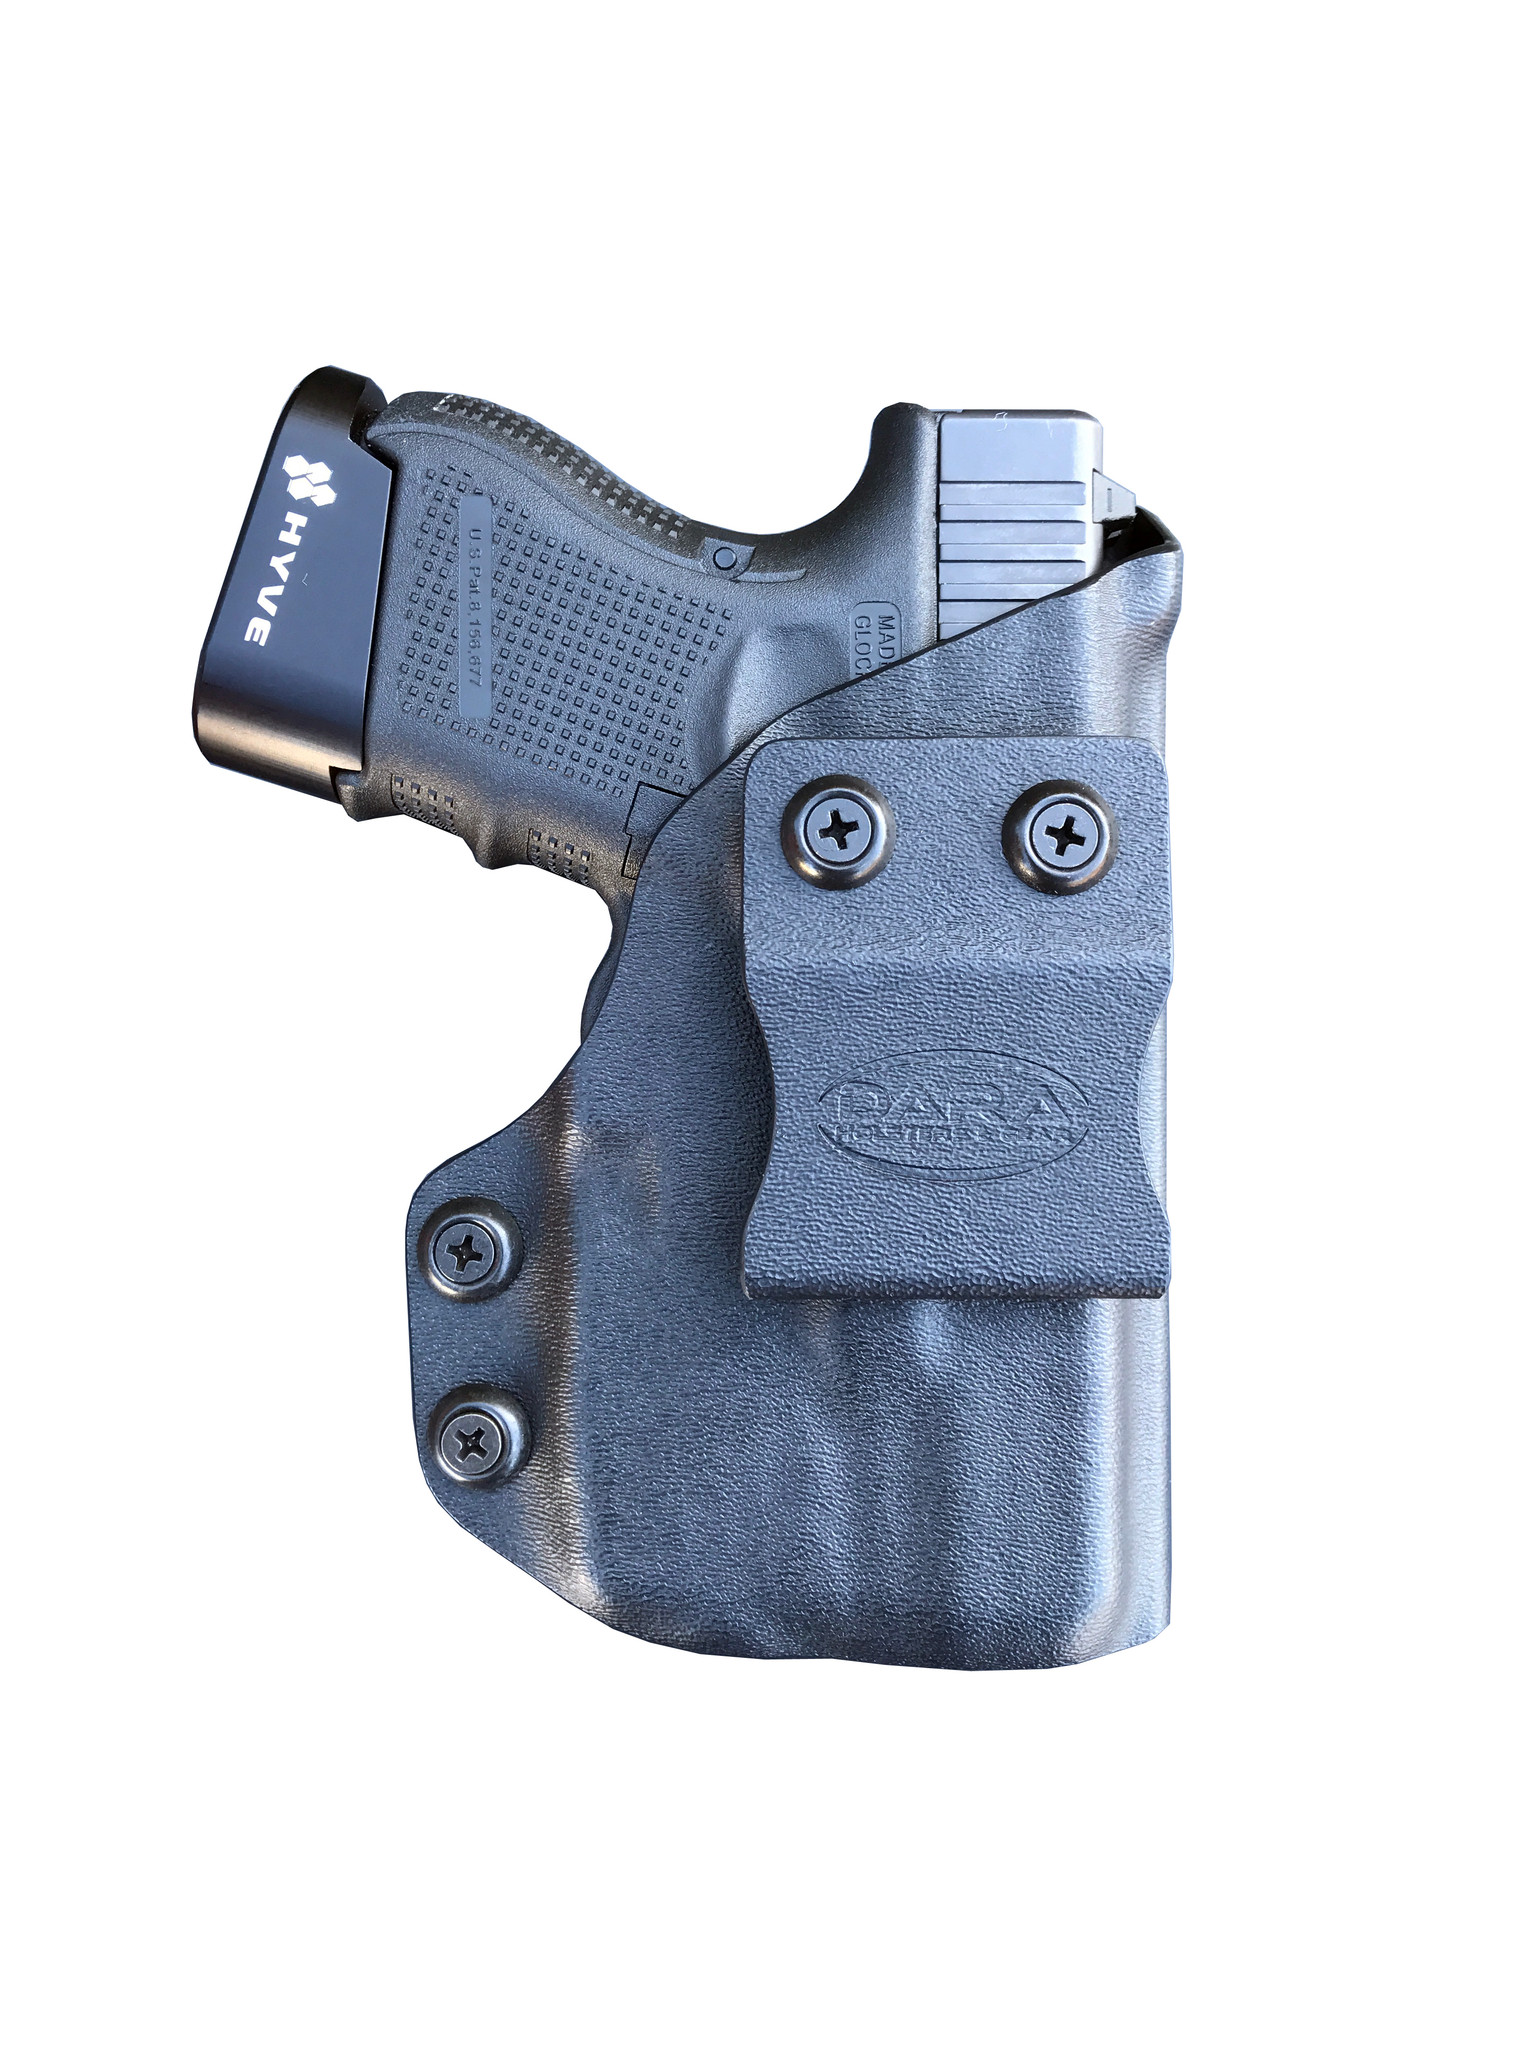 TLR-6 Holsters // TLR-6 Compatibility